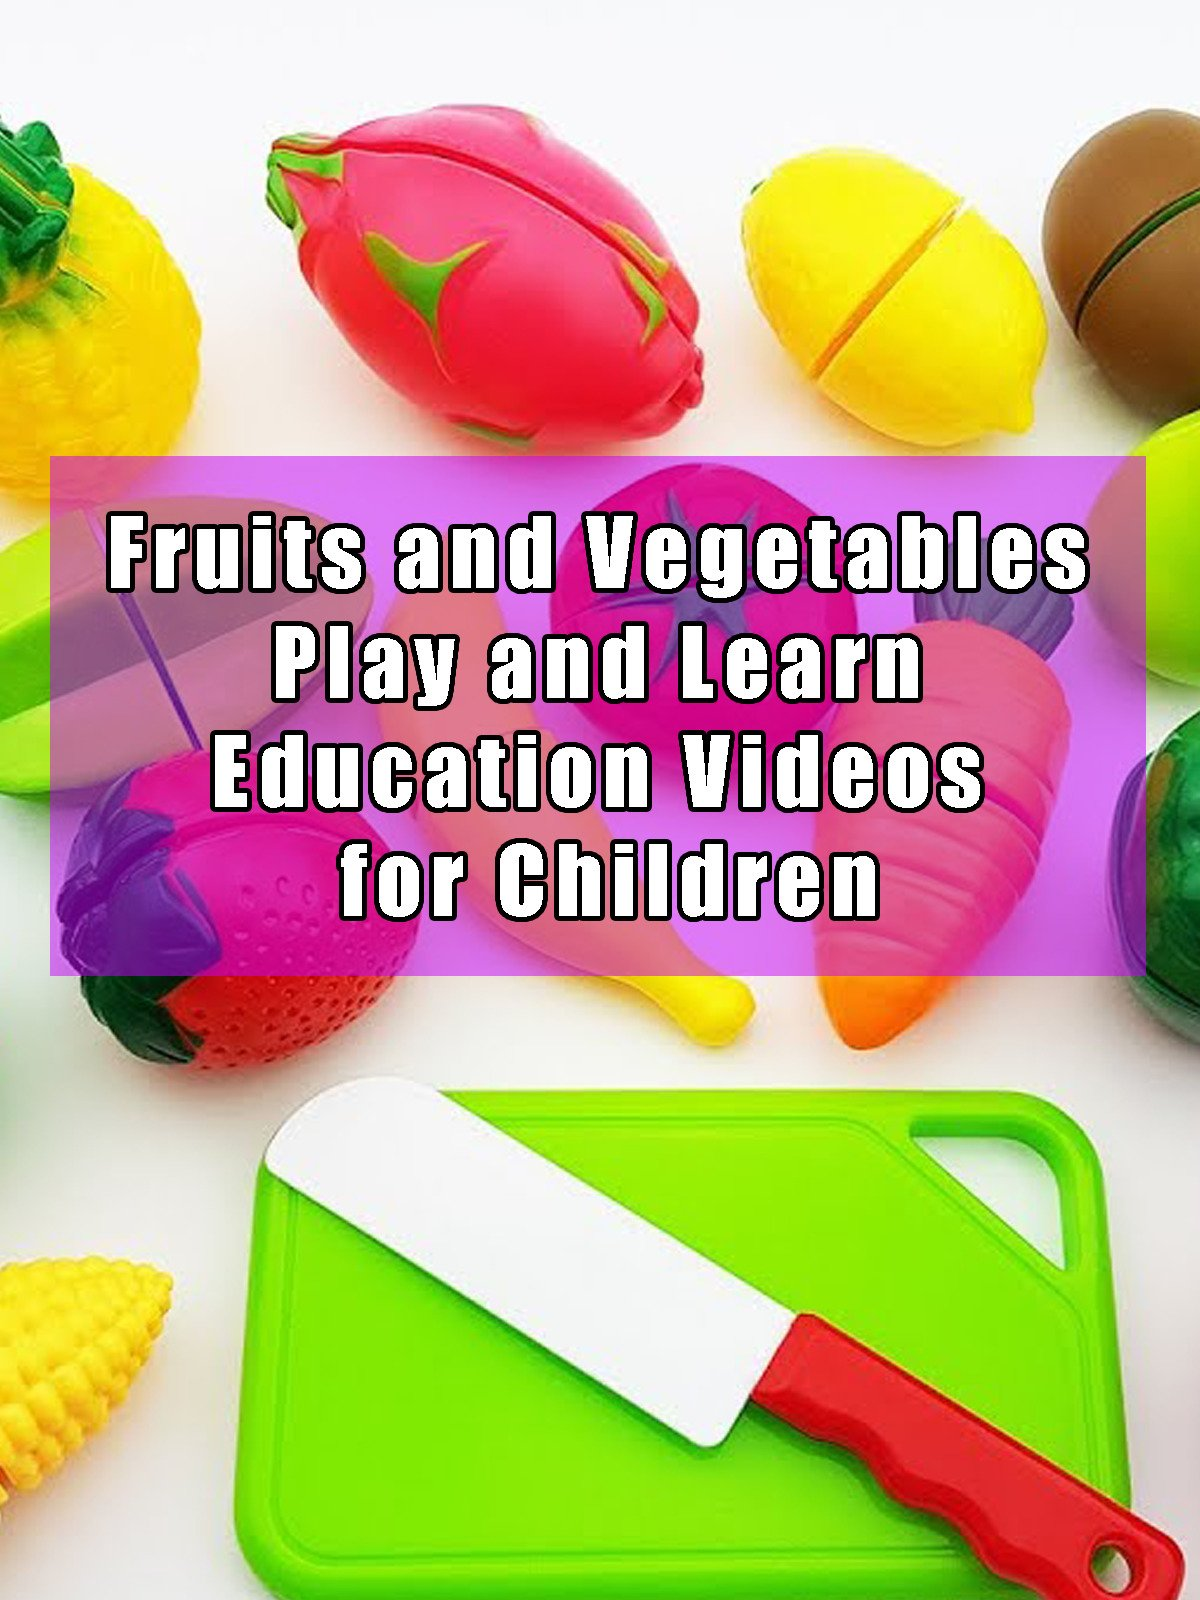 Fruits and Vegetables Play and Learn Education Videos for Children on Amazon Prime Video UK